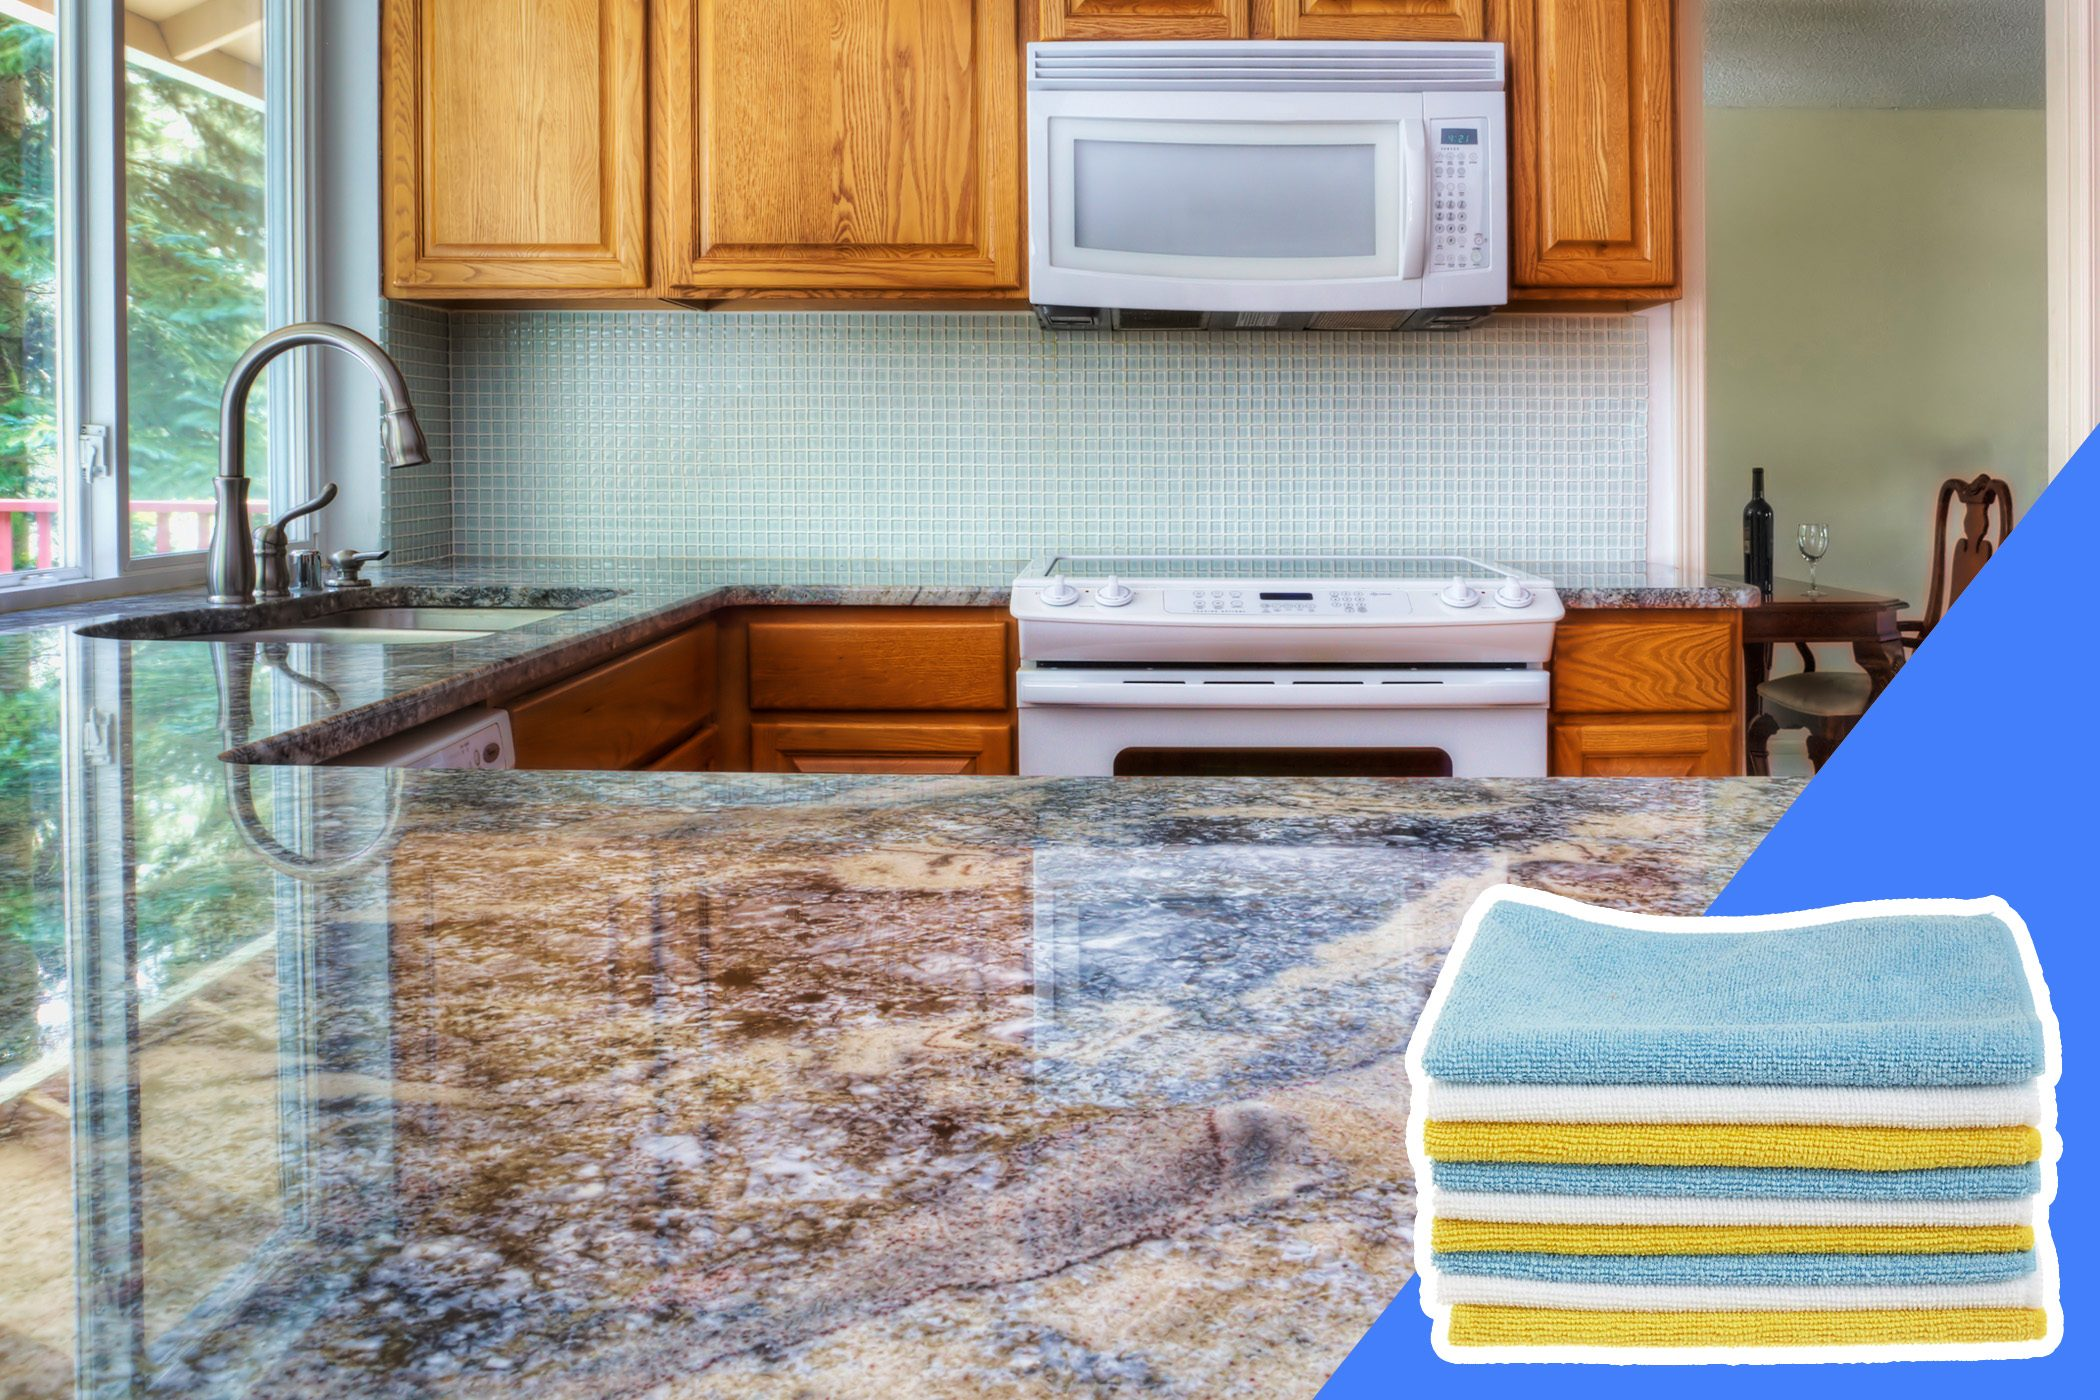 don't clean stone countertops with bleach